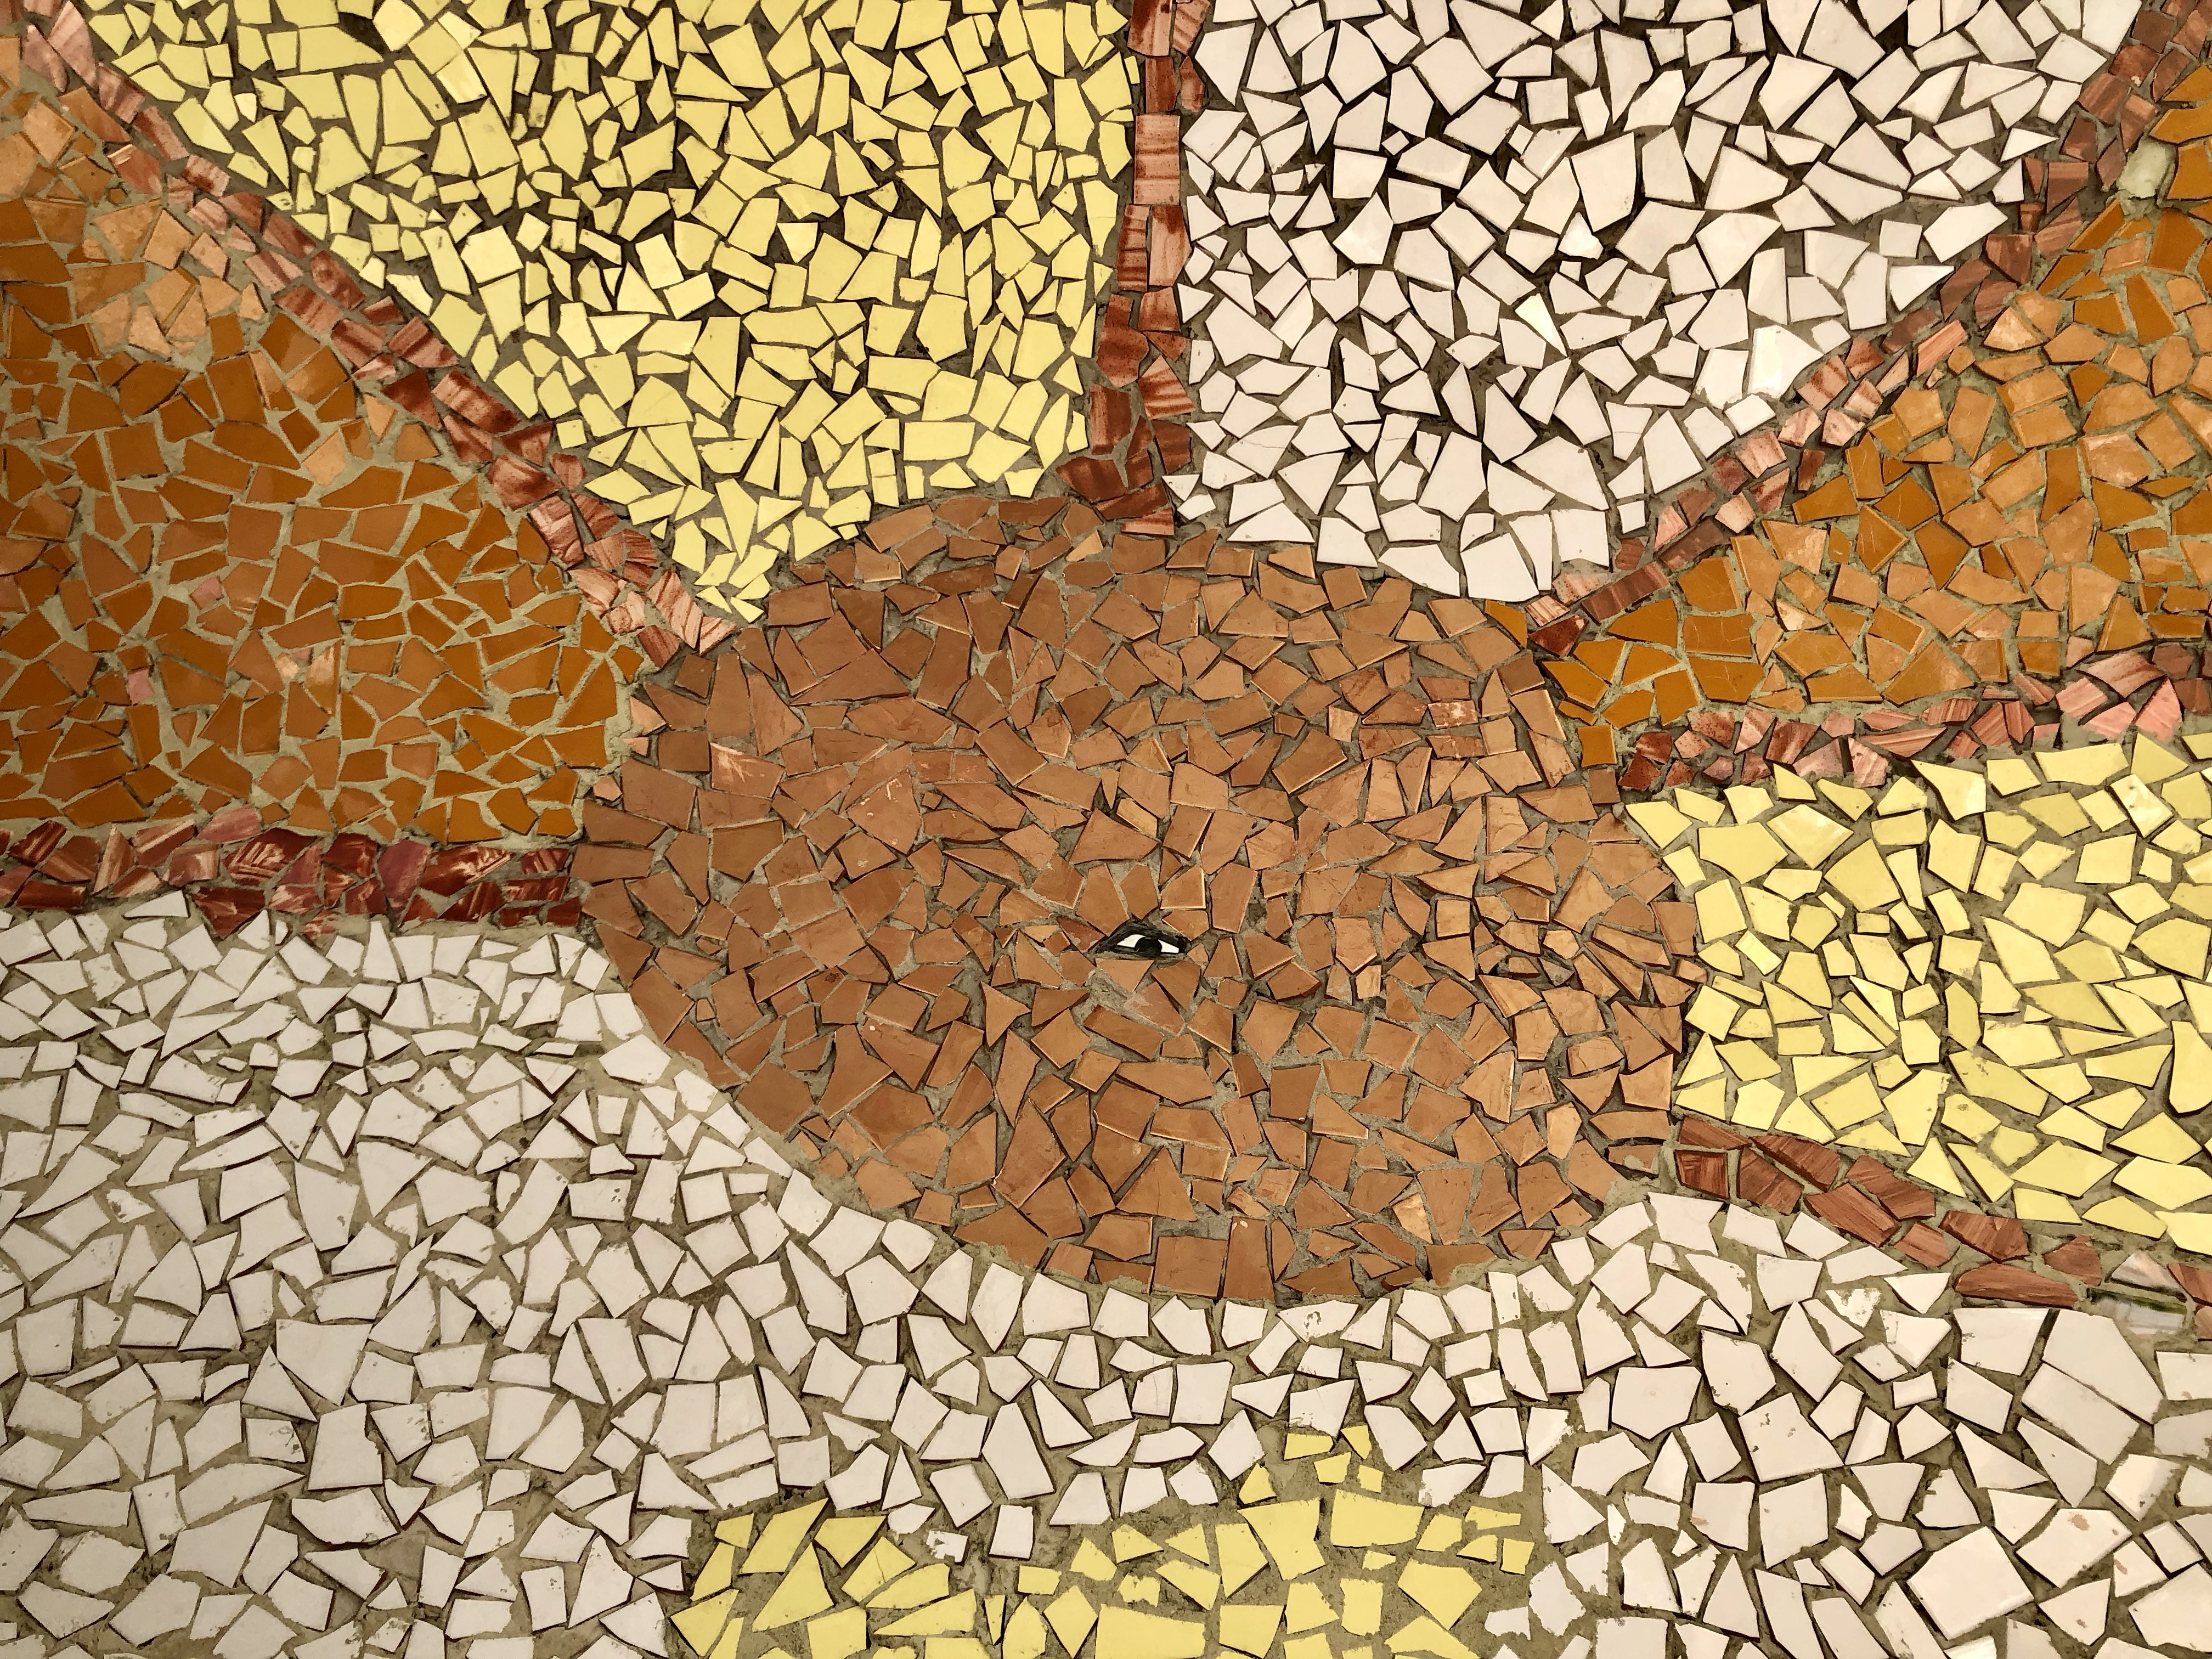 Photograph of a ceramic mosaic with beams of yellow, brown, and white coming from a brown circle with a black and white eyeball in the center.